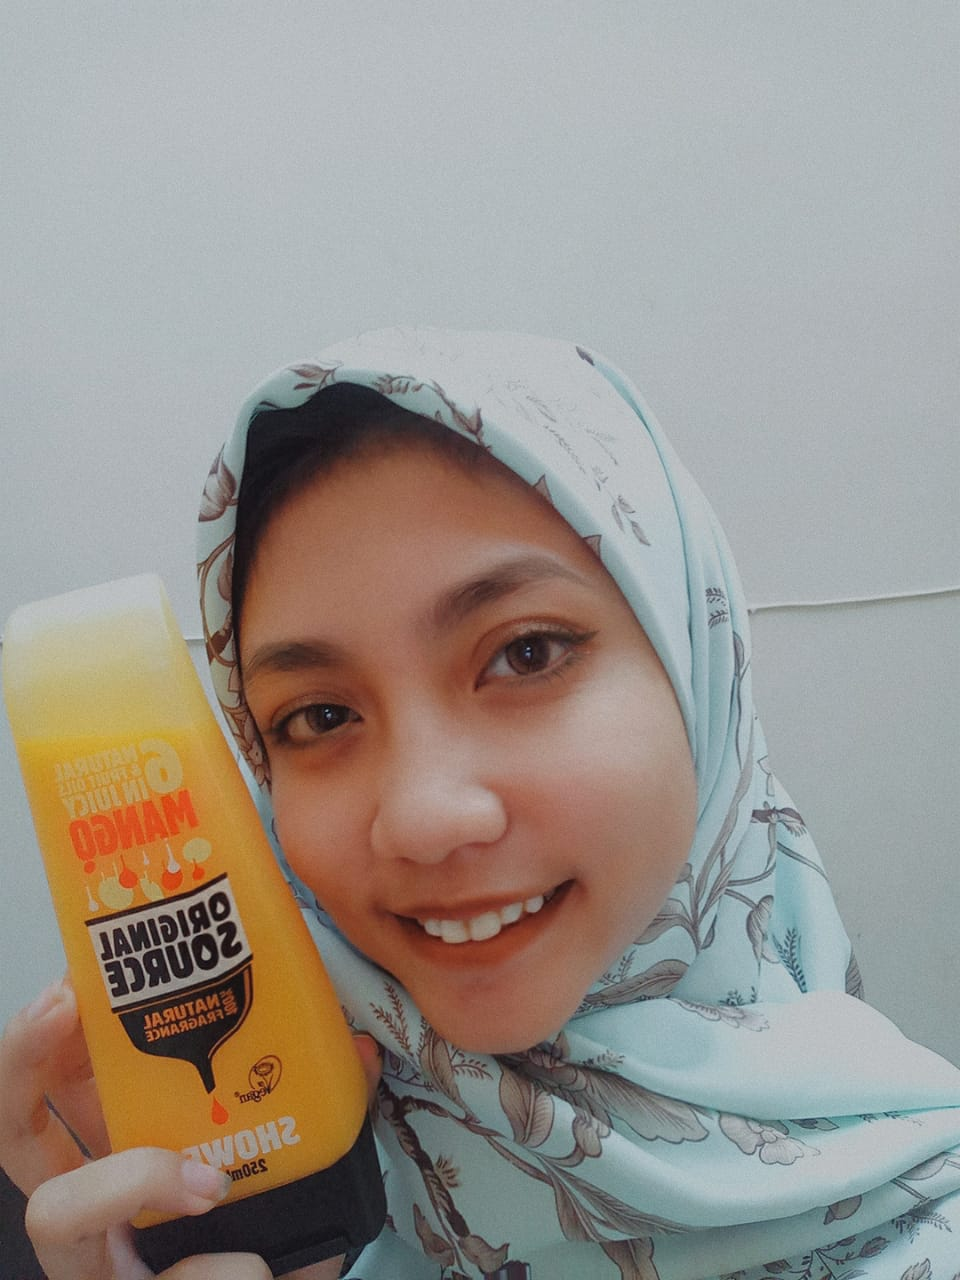 gambar review ke-1 untuk Original Source Mango Shower